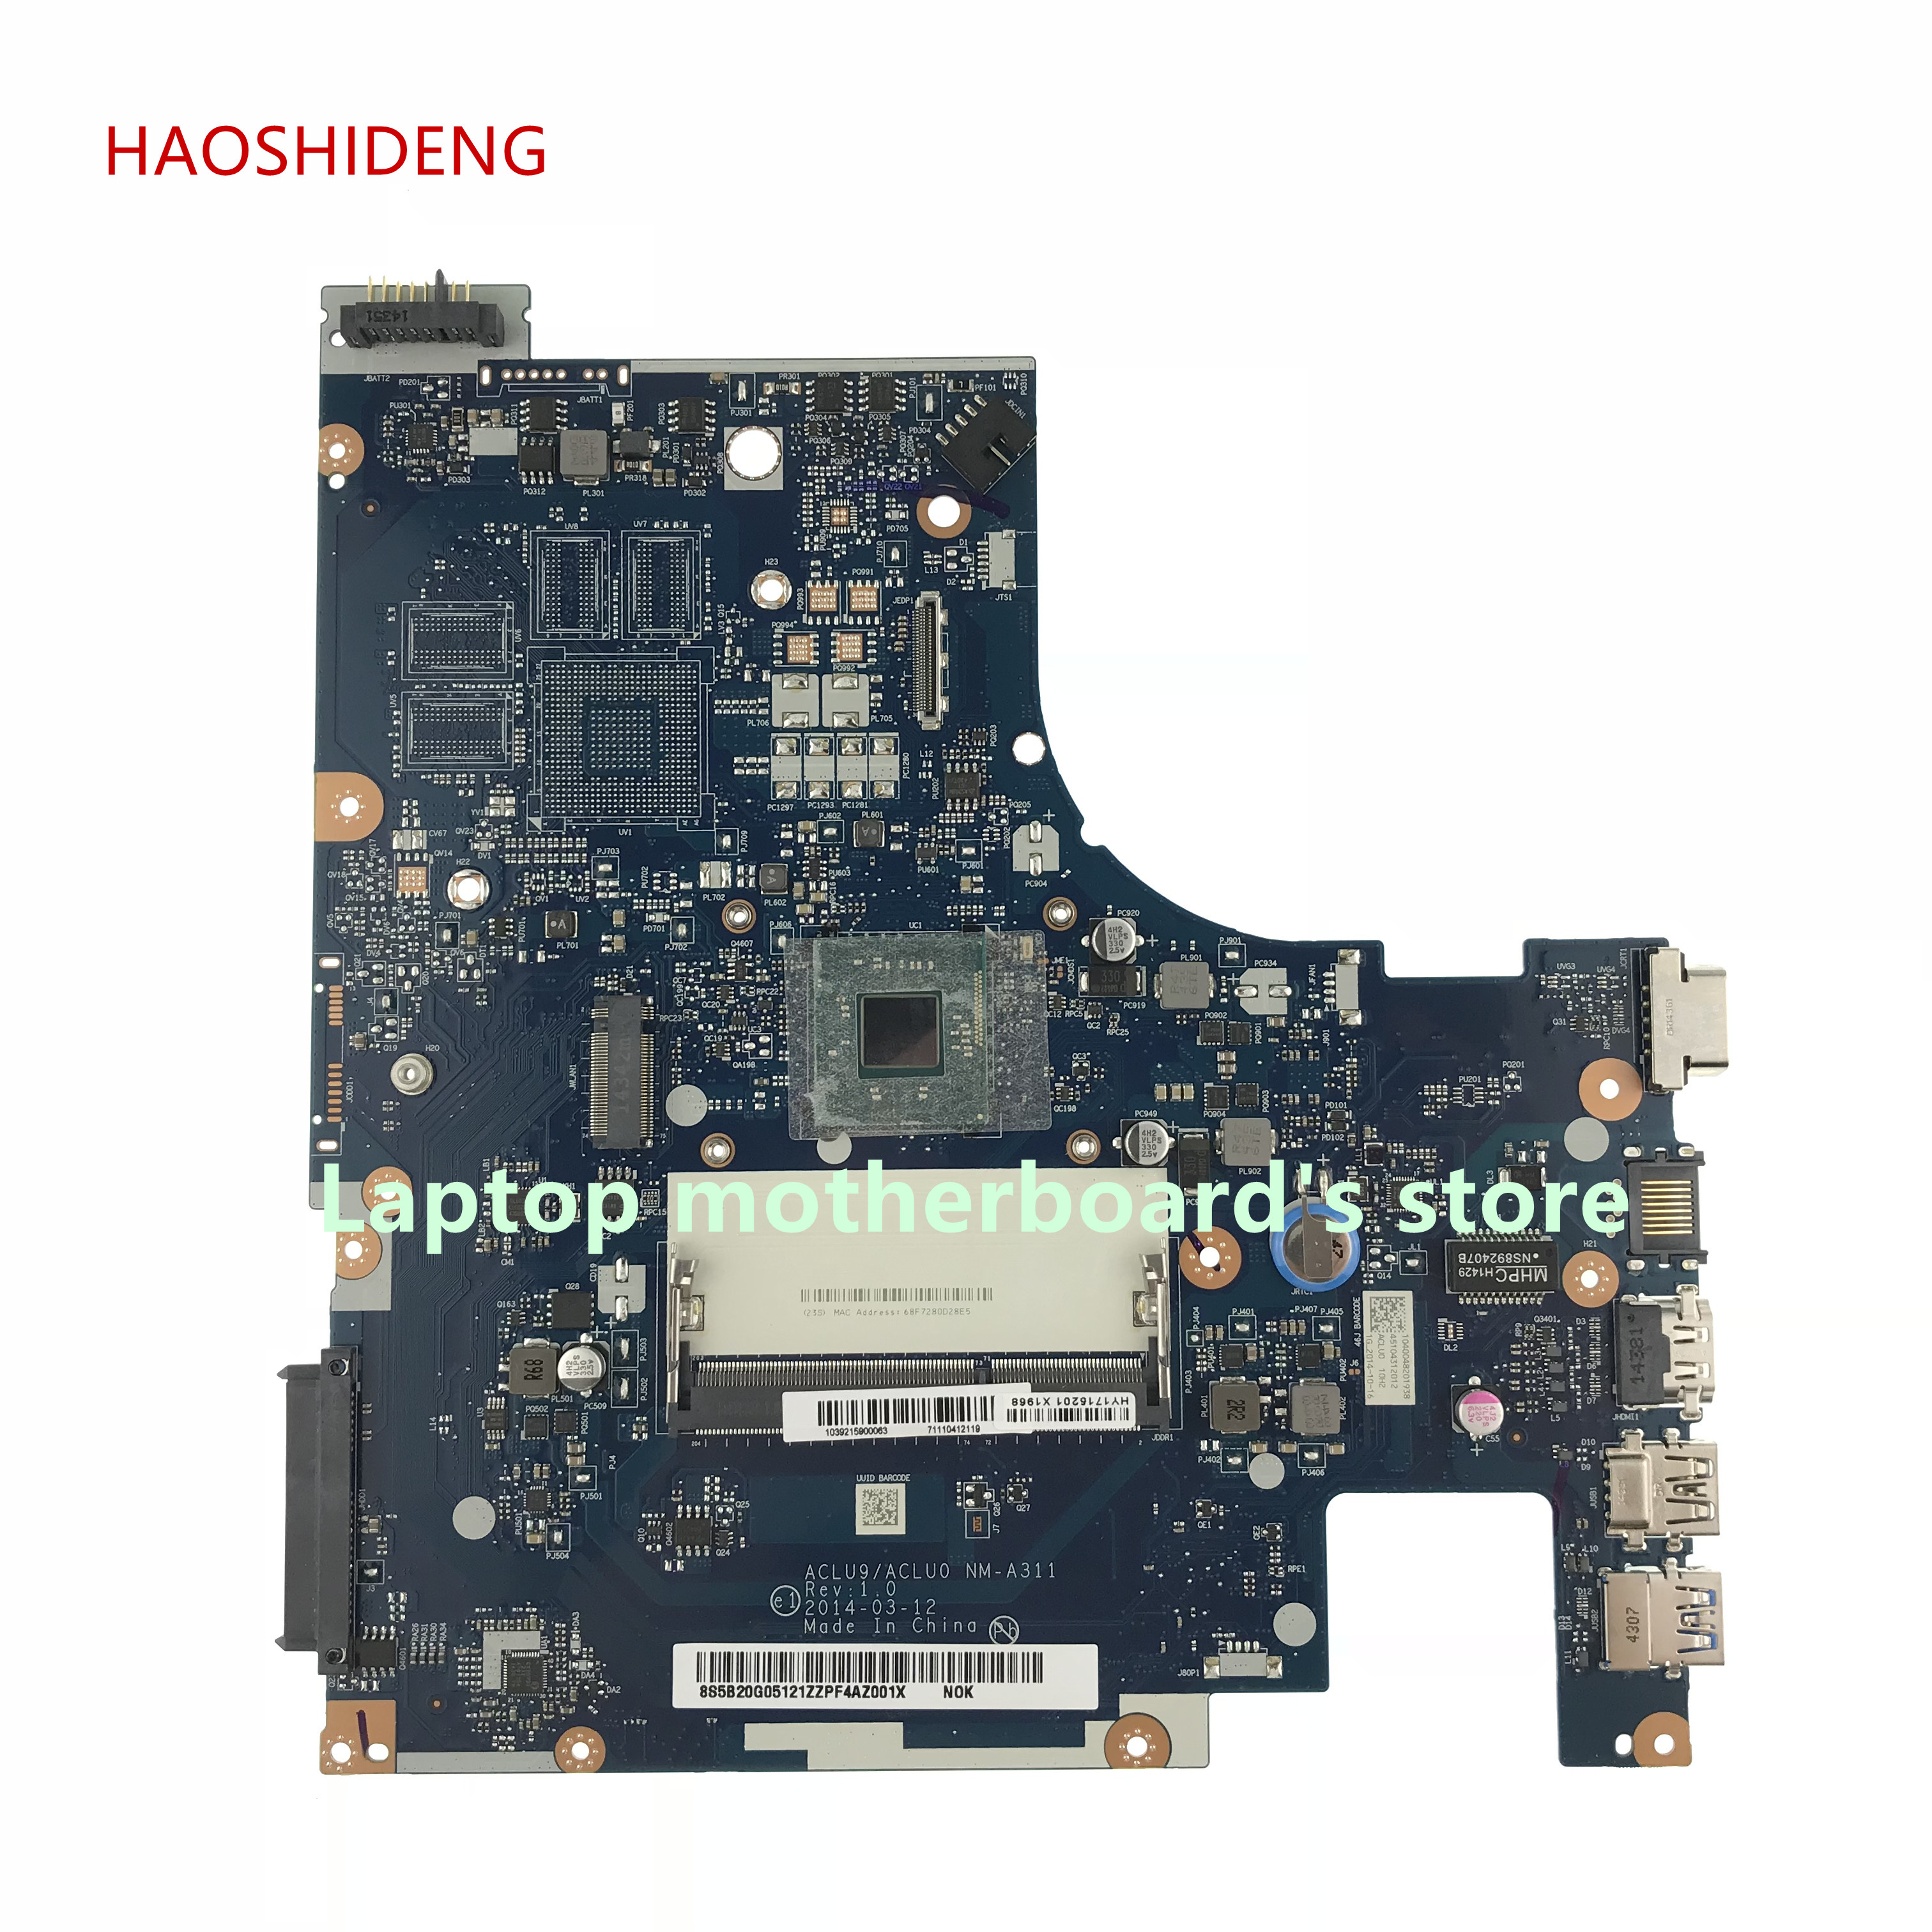 HAOSHIDENG ACLU9/ACLU0 NM-A311 mainboard For Lenovo G50 G50-30 Series Laptop Motherboard with 3530 CPU fully Tested laptop motherboard for lenovo g50 70 nm a272 with pentium cpu on board fully tested